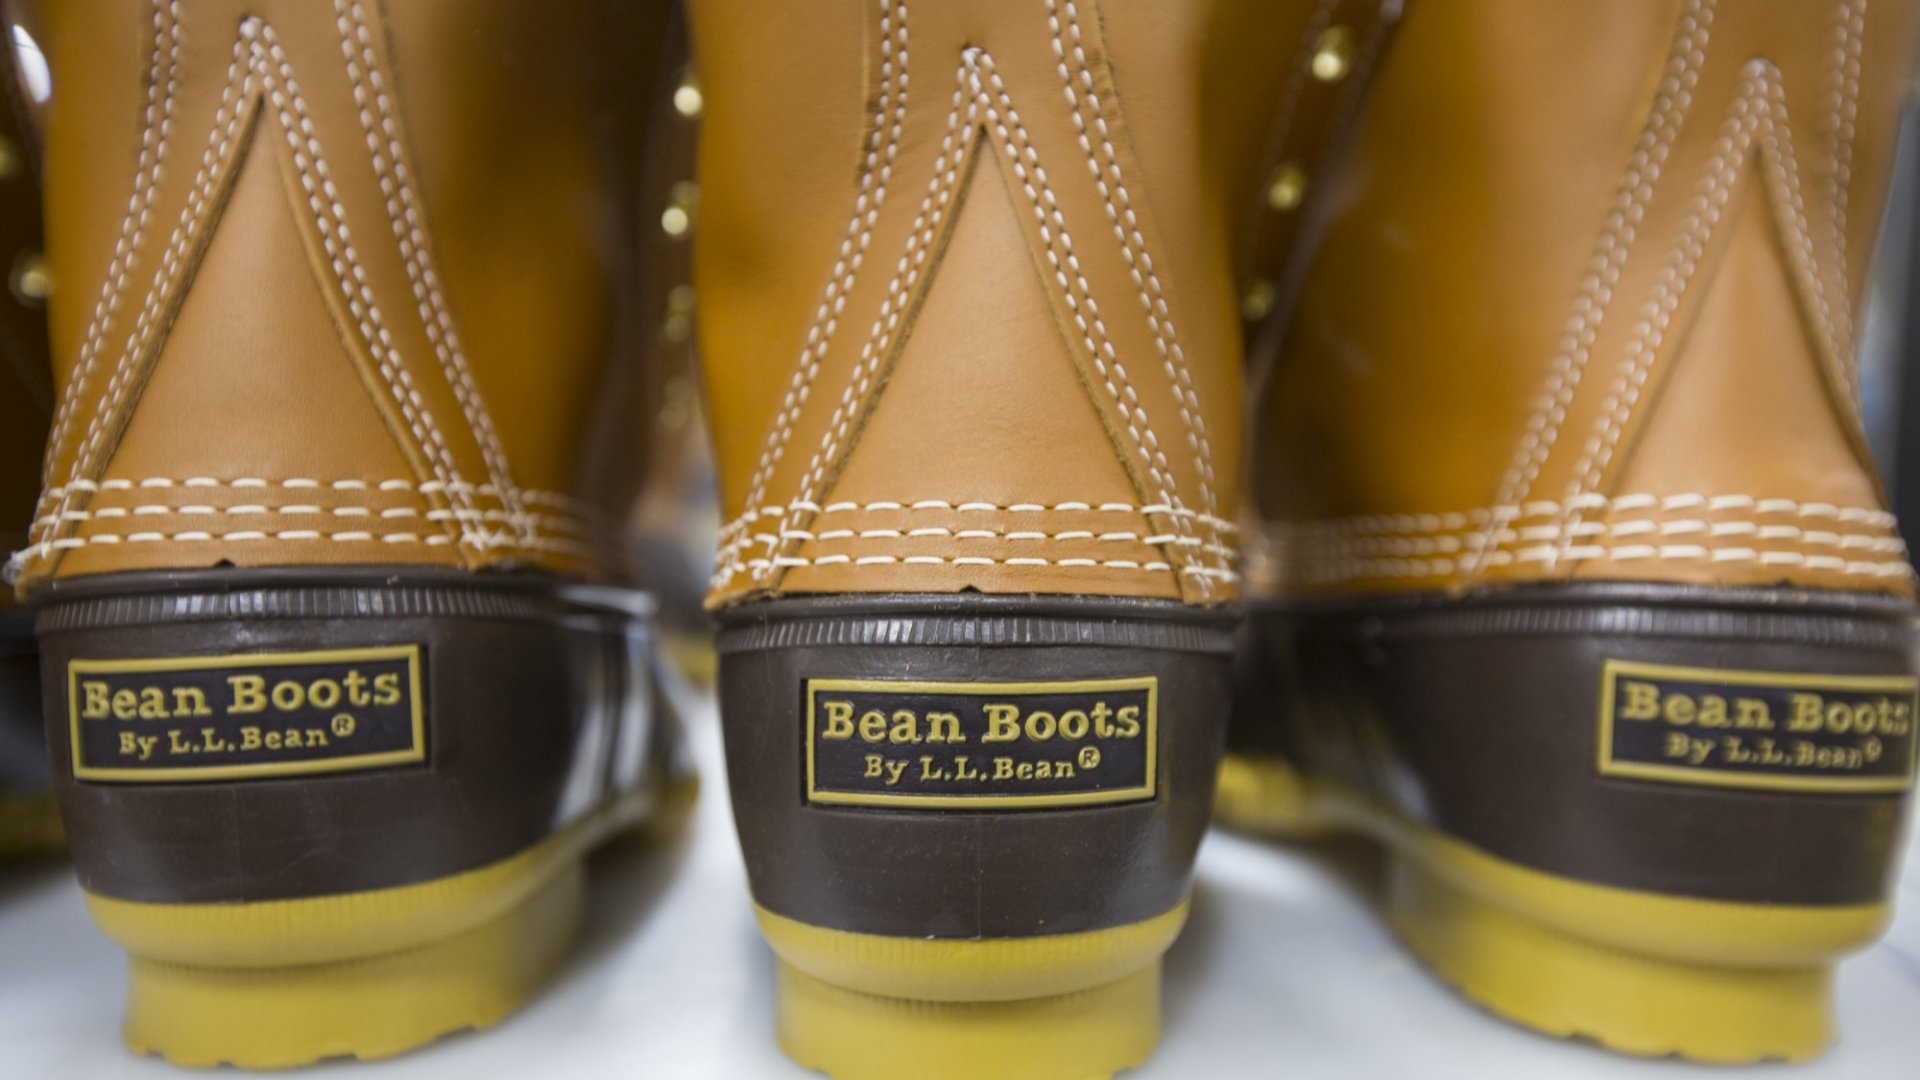 L.L. Bean Enrages Customers and Ruins Its Brand in 1 Facebook Post